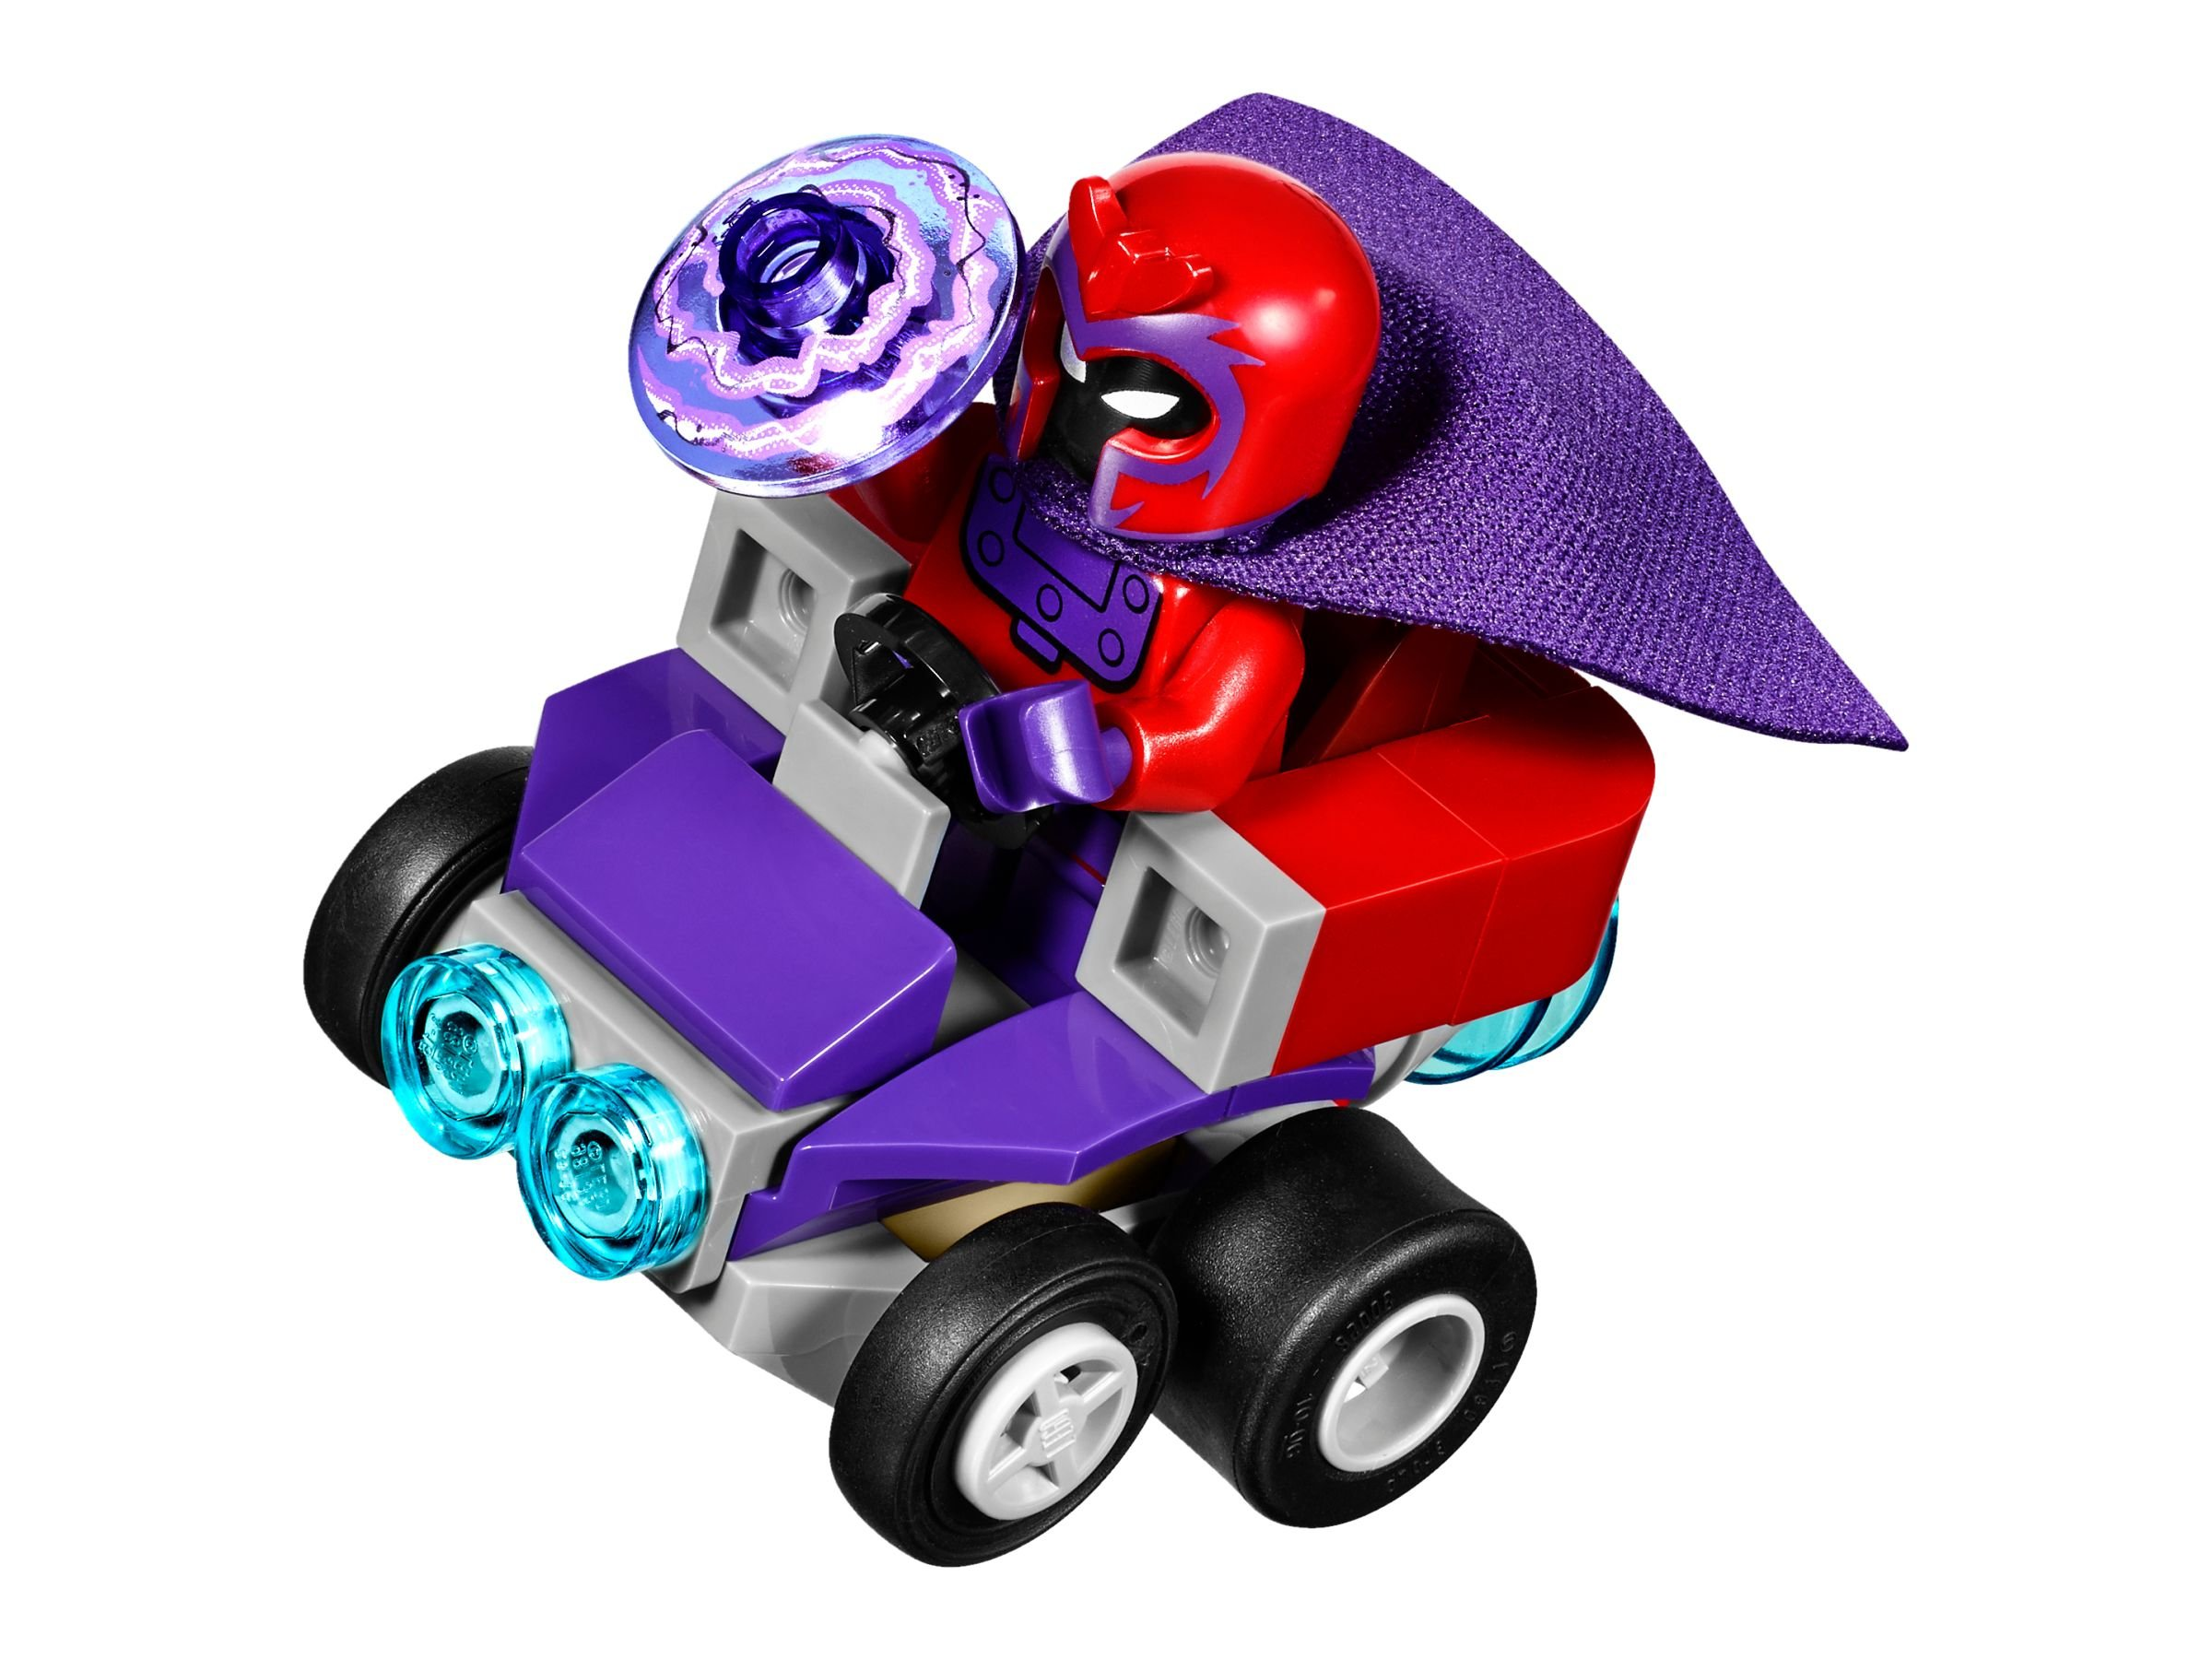 LEGO Super Heroes 76073 Mighty Micros: Wolverine vs. Magneto LEGO_76073_alt2.jpg